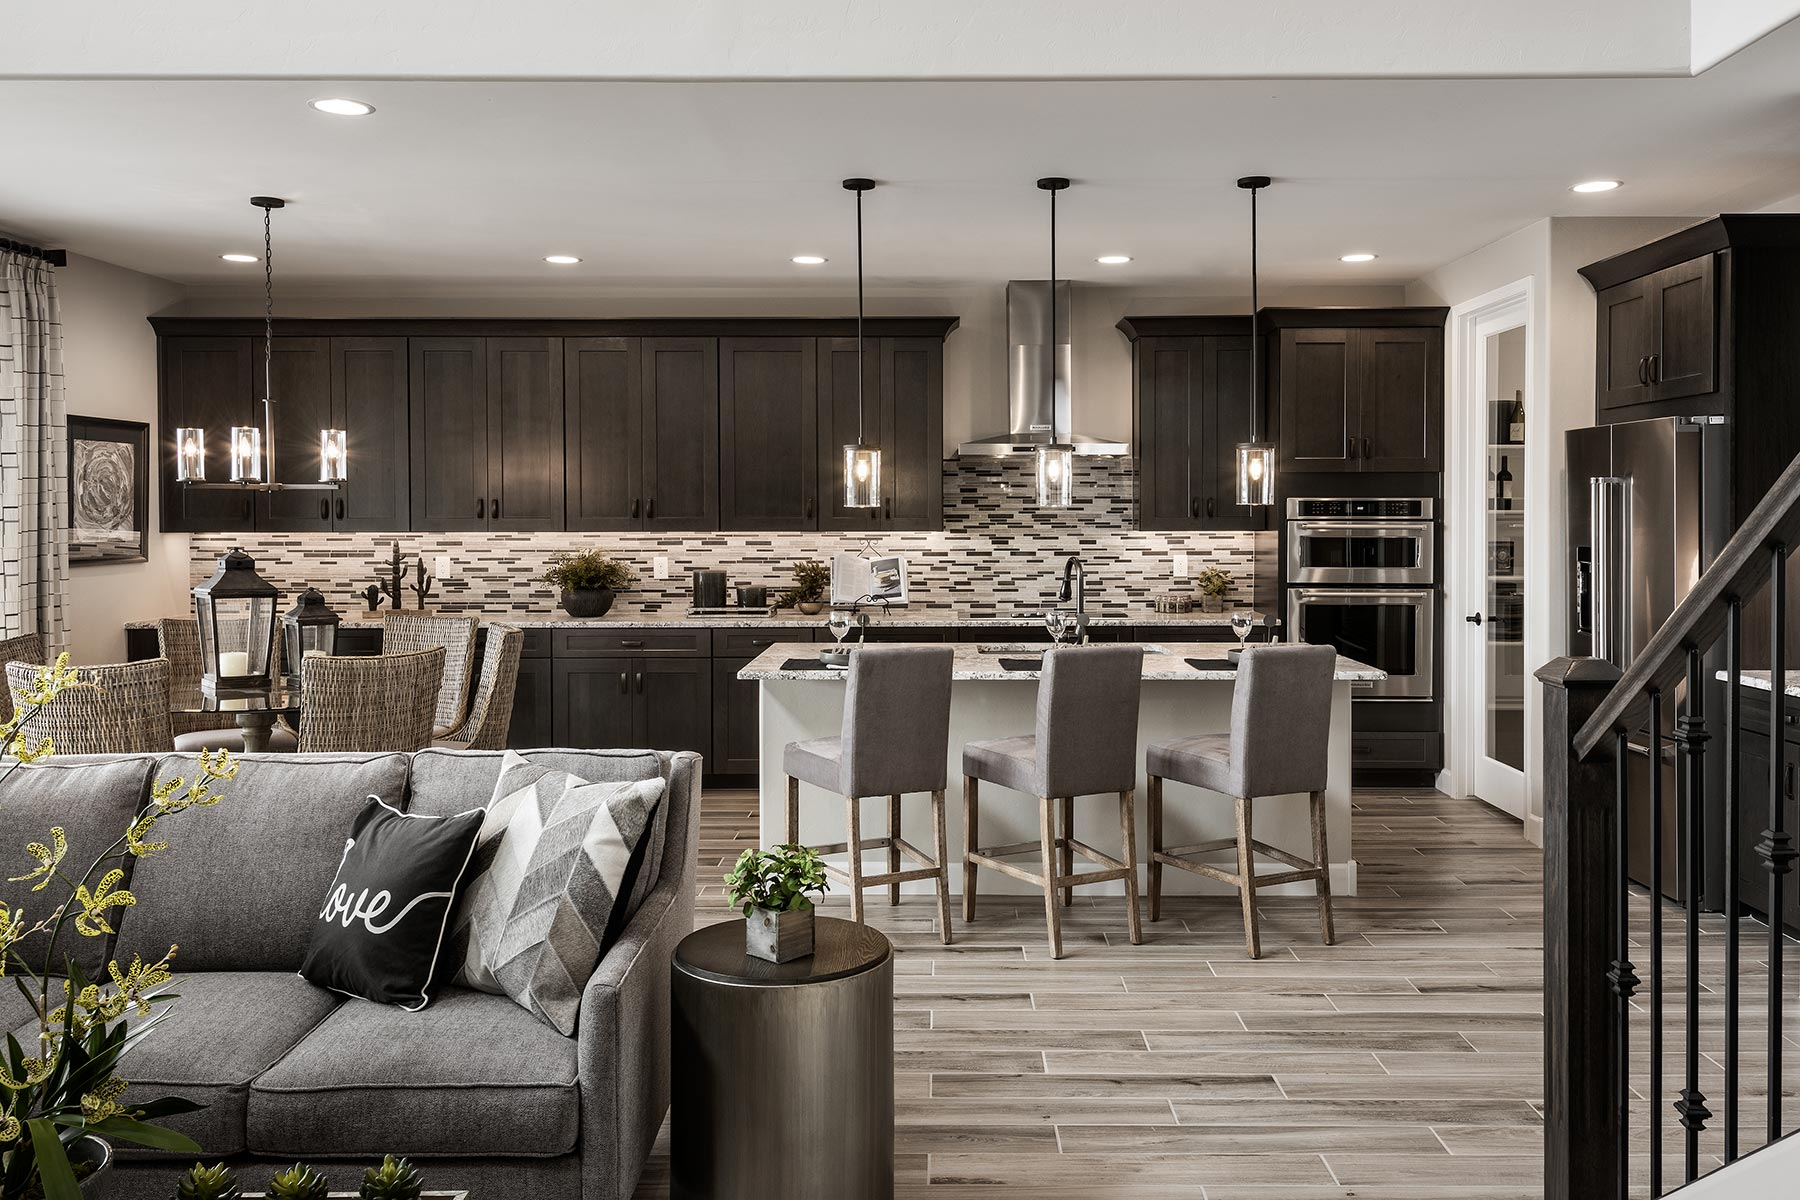 Sophora Plan Kitchen at Saguaro Trails in Tucson Arizona by Mattamy Homes